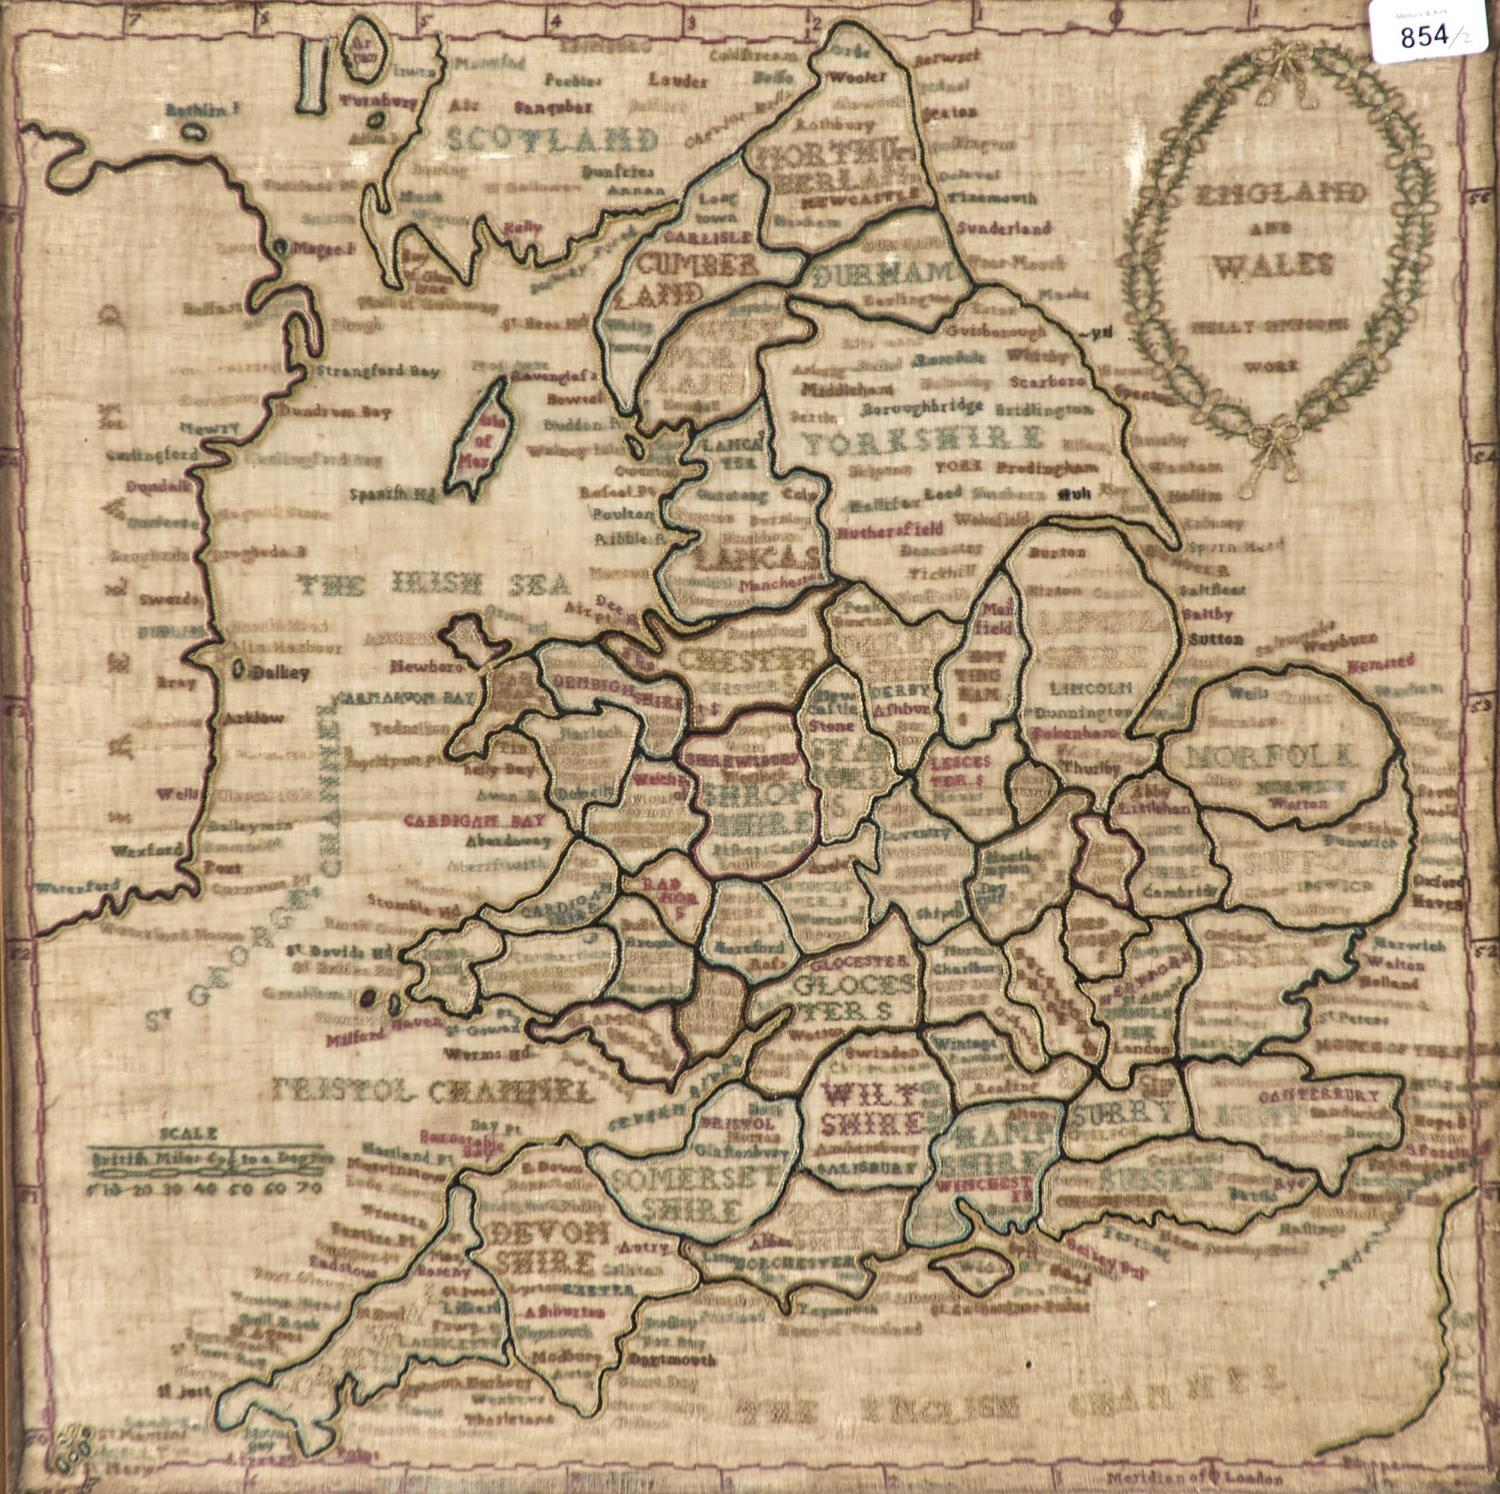 TWO ENGLISH LINEN MAP SAMPLERS OF ENDLAND AND WALES AND EUROPE, NELLIE SIMPSON'S WORK AND MARGARET - Image 2 of 4